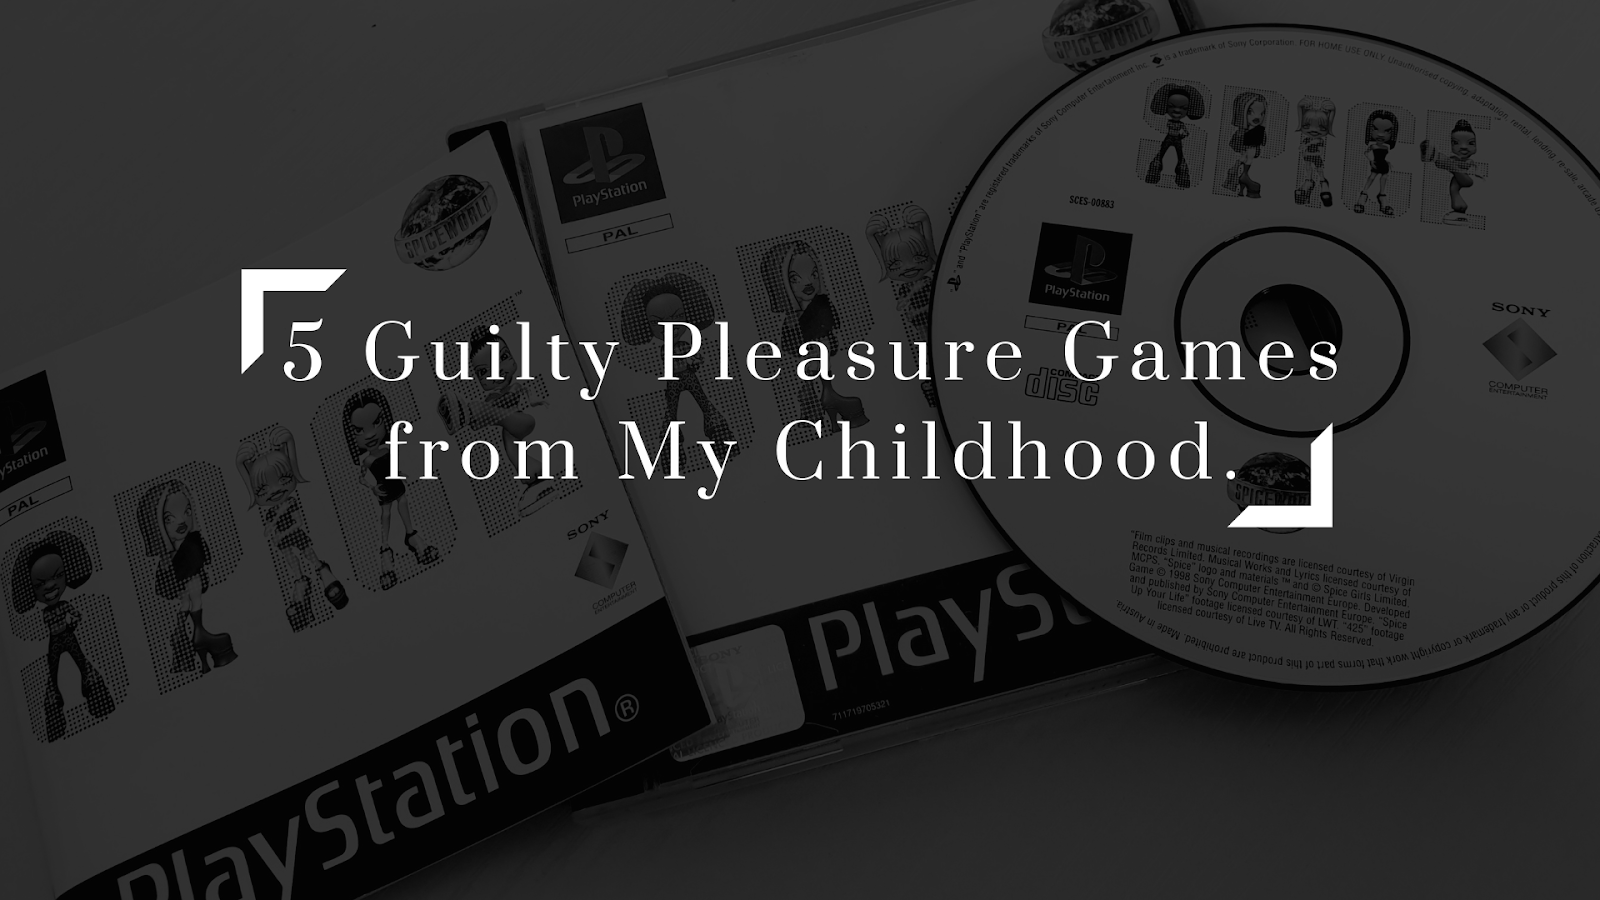 5 Guilty Pleasure Games from My Childhood.